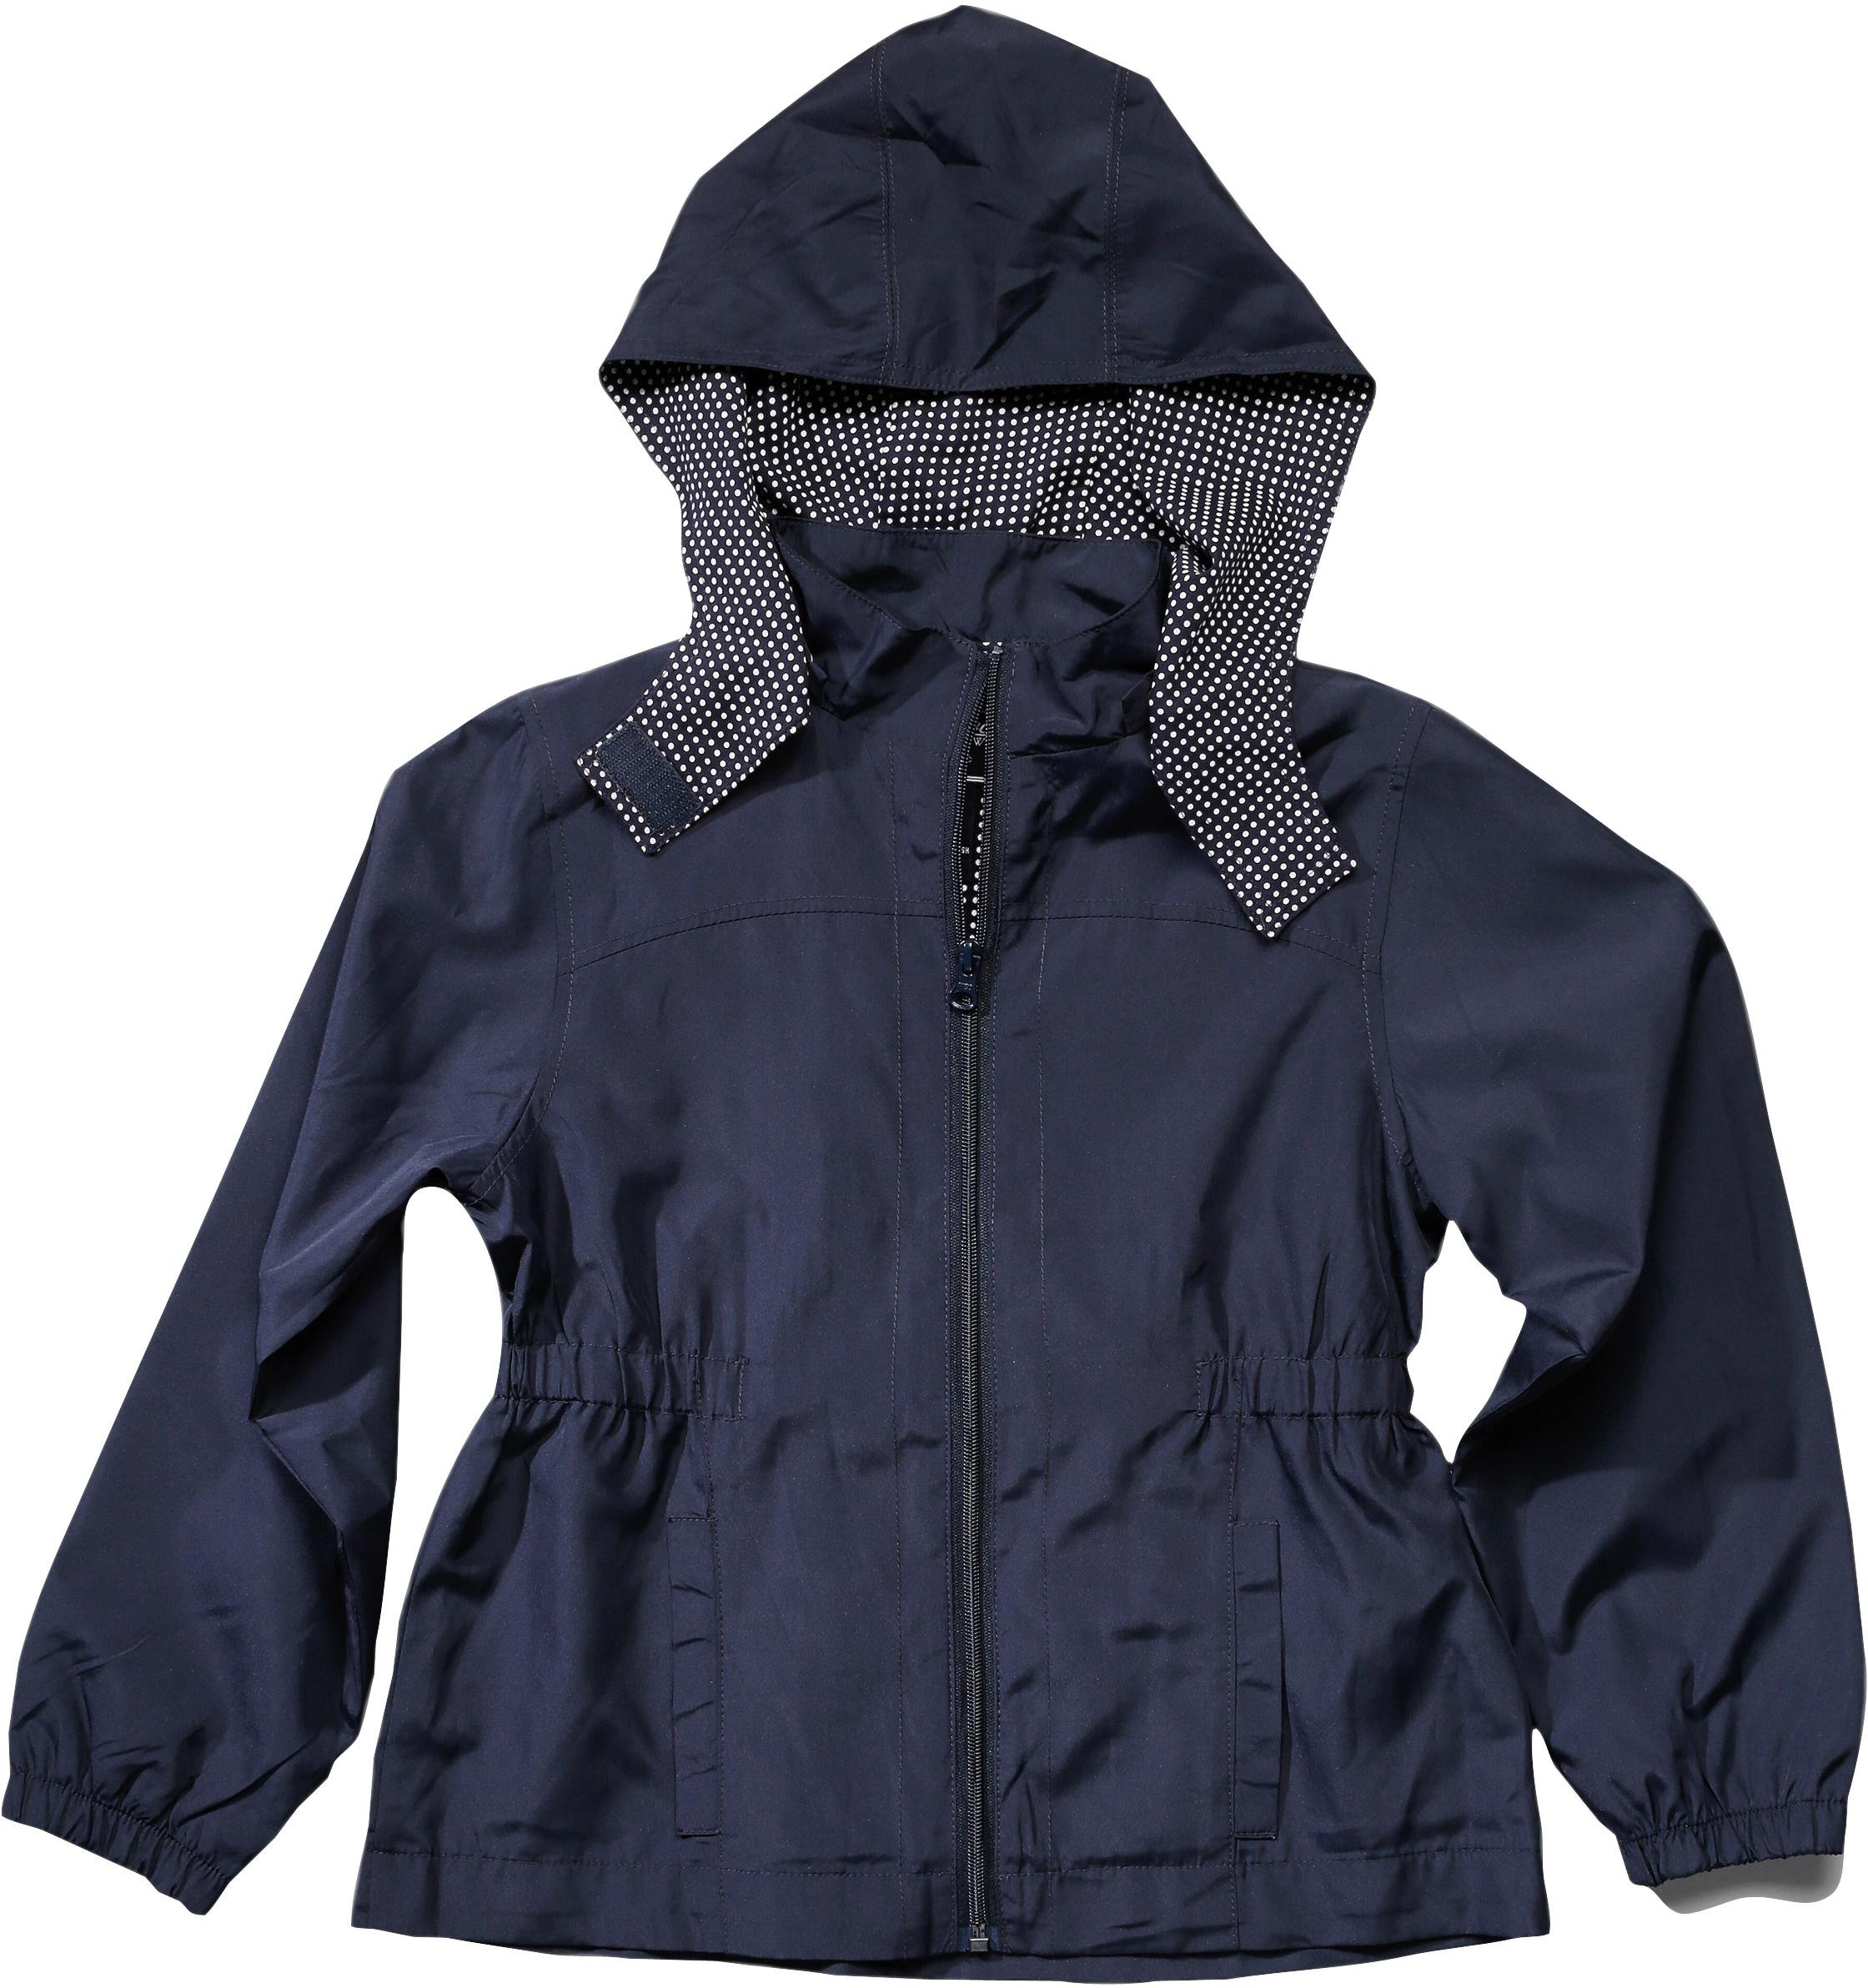 French Toast School Uniform Girls Pongee Jacket w/Detachable Hood, Navy, X-Small (4/5) by French Toast